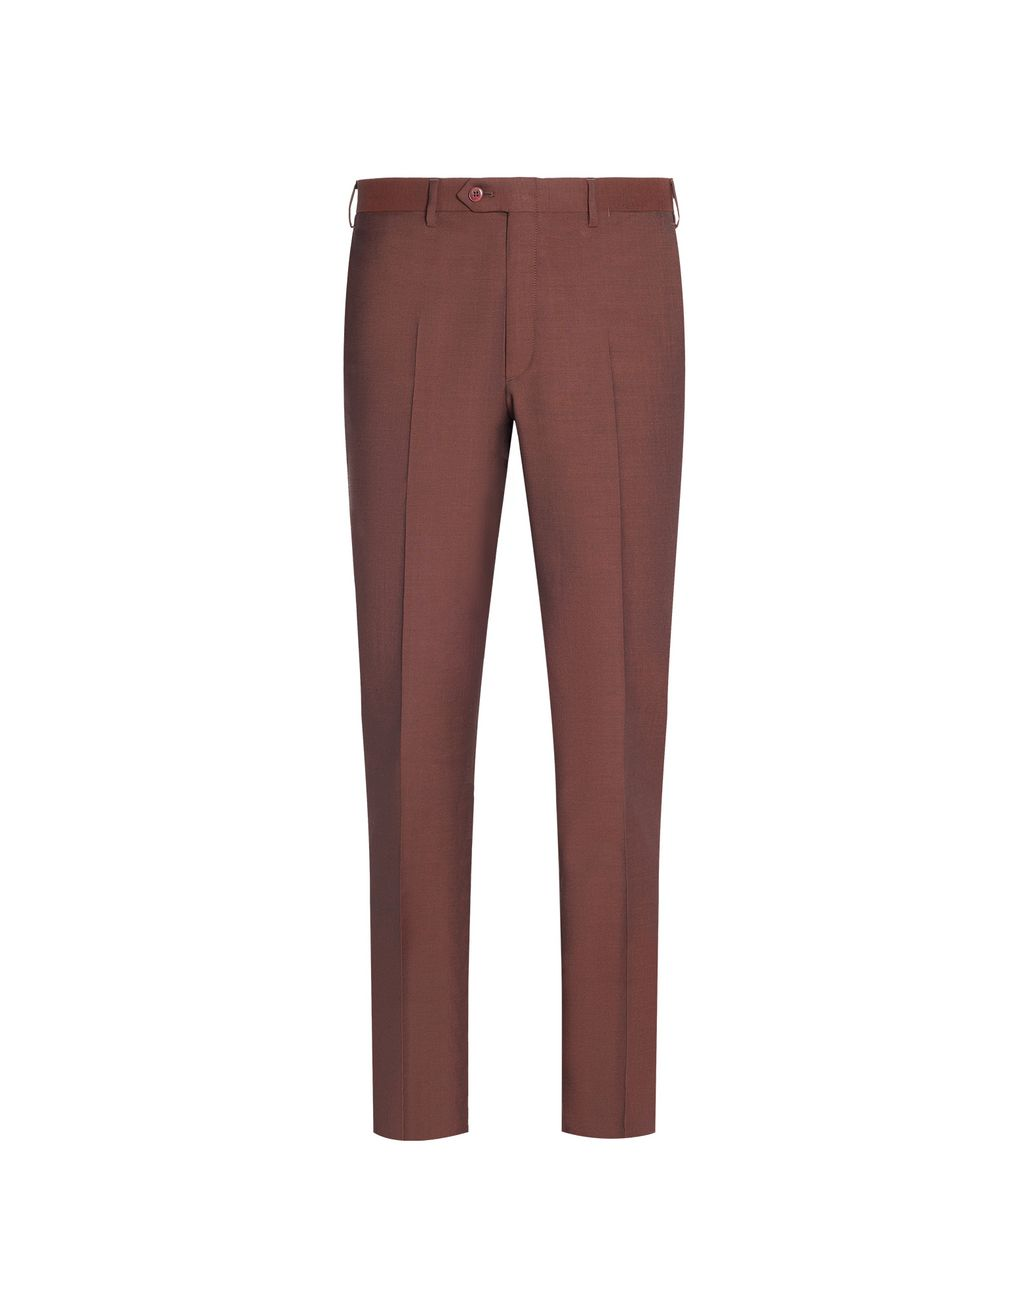 BRIONI Brown Megeve Trousers Trousers Man f